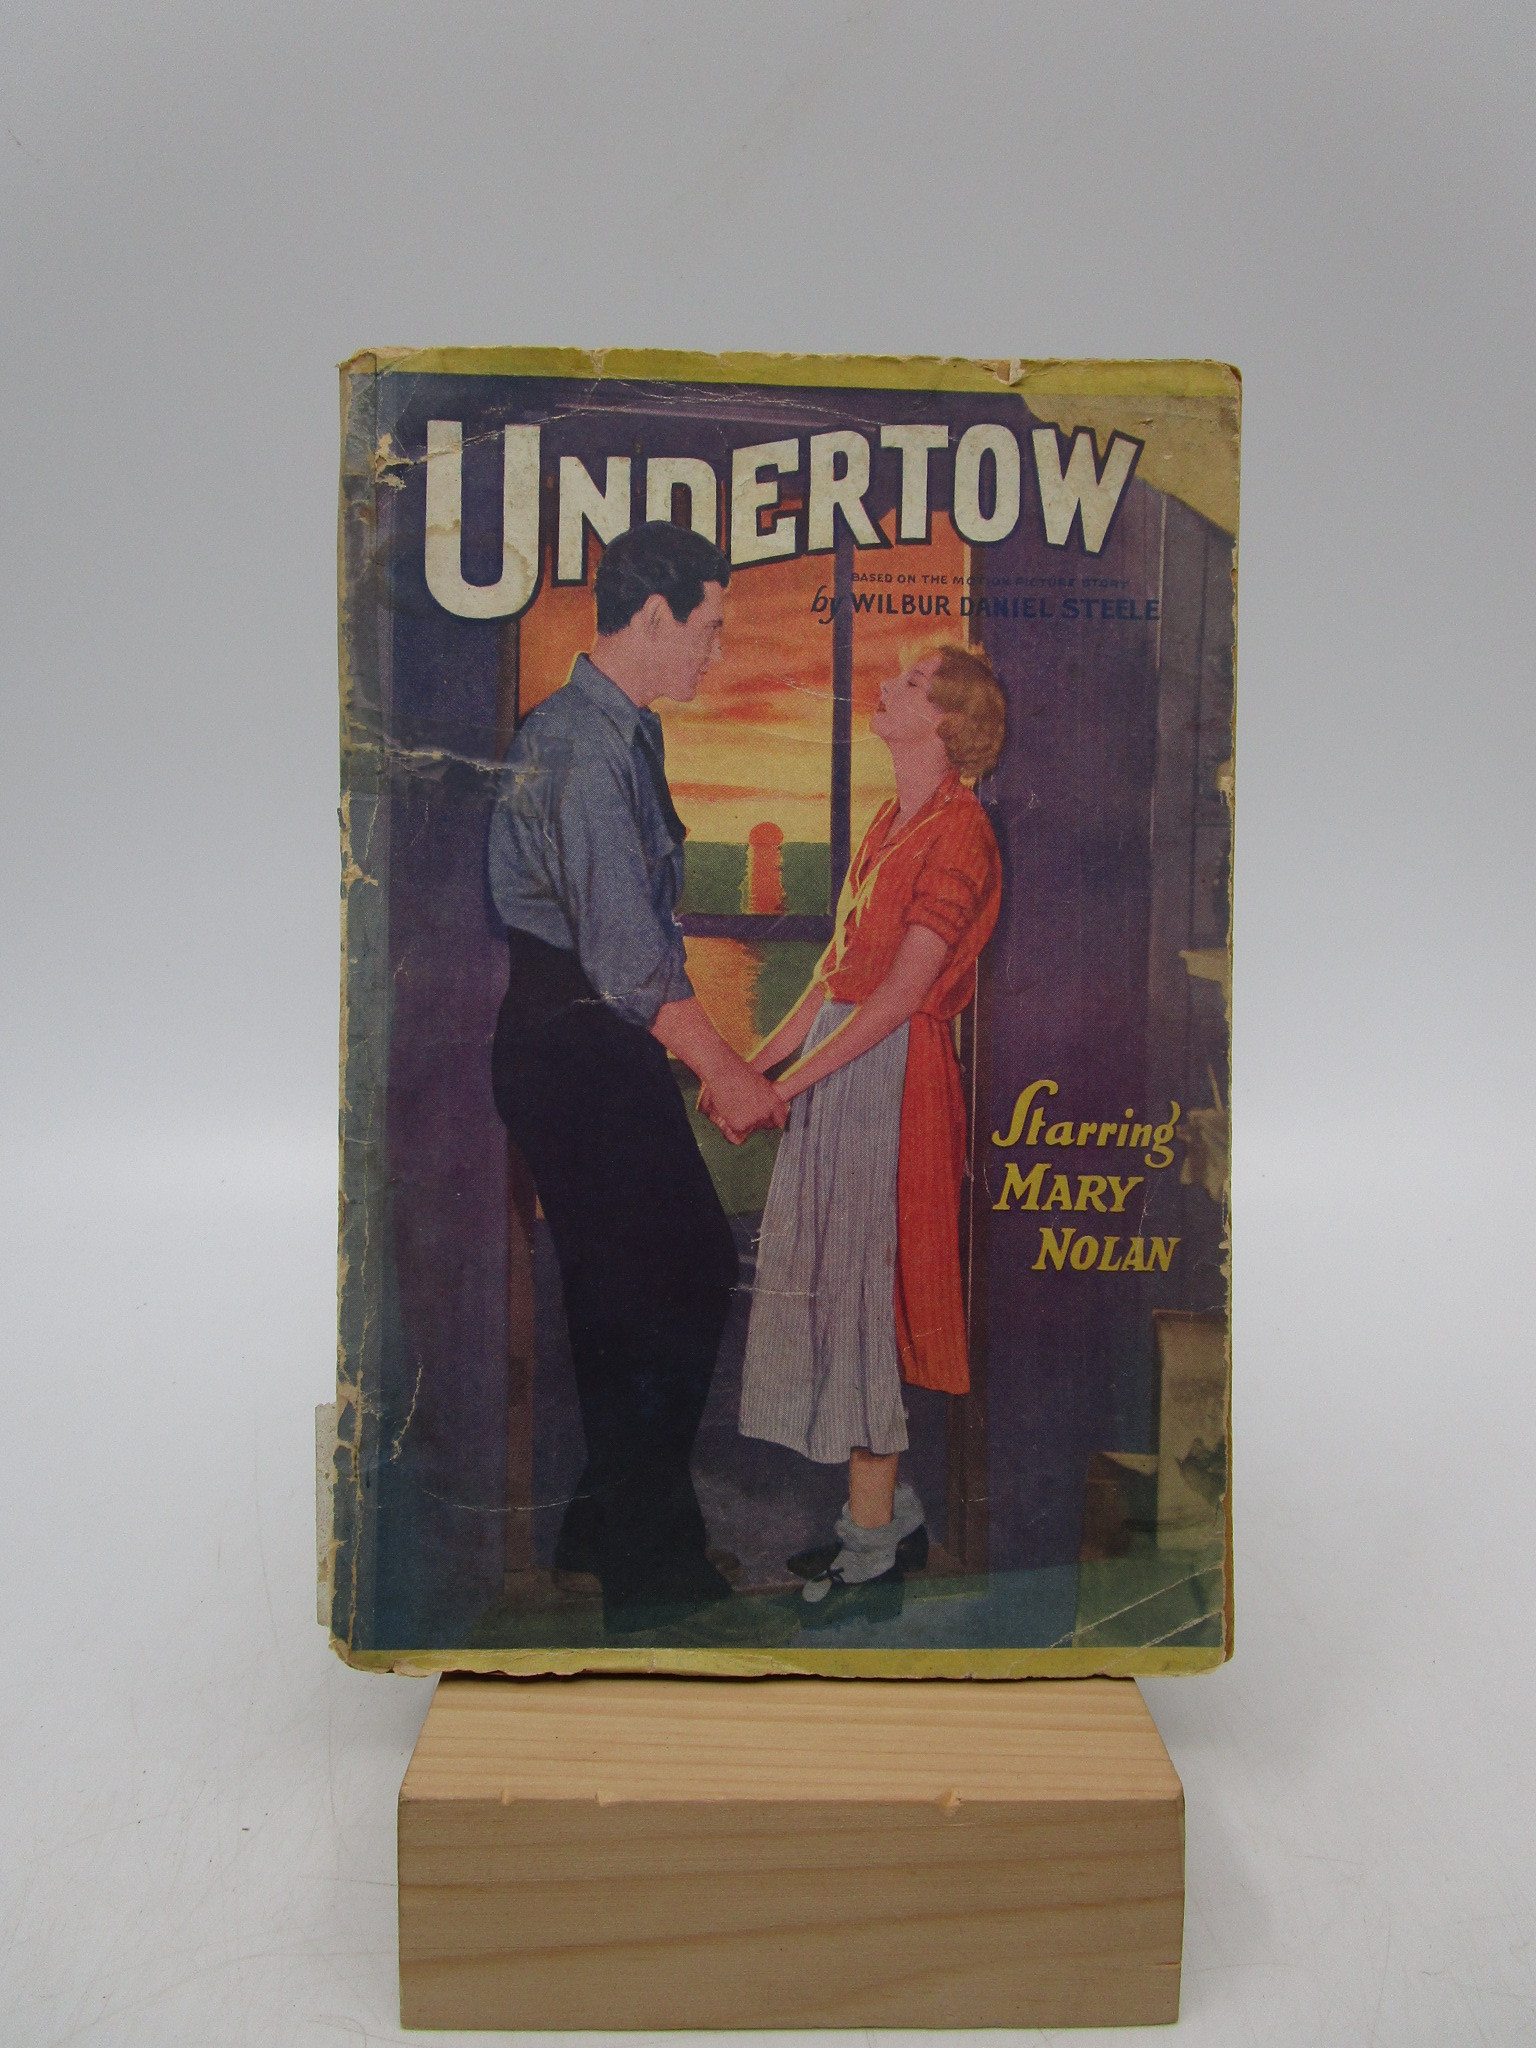 Image for Undertow: A Thrilling Romantic Tale of Love and Sacrifice, Based on the Motion Picture Story by Wilbur Daniel Steele